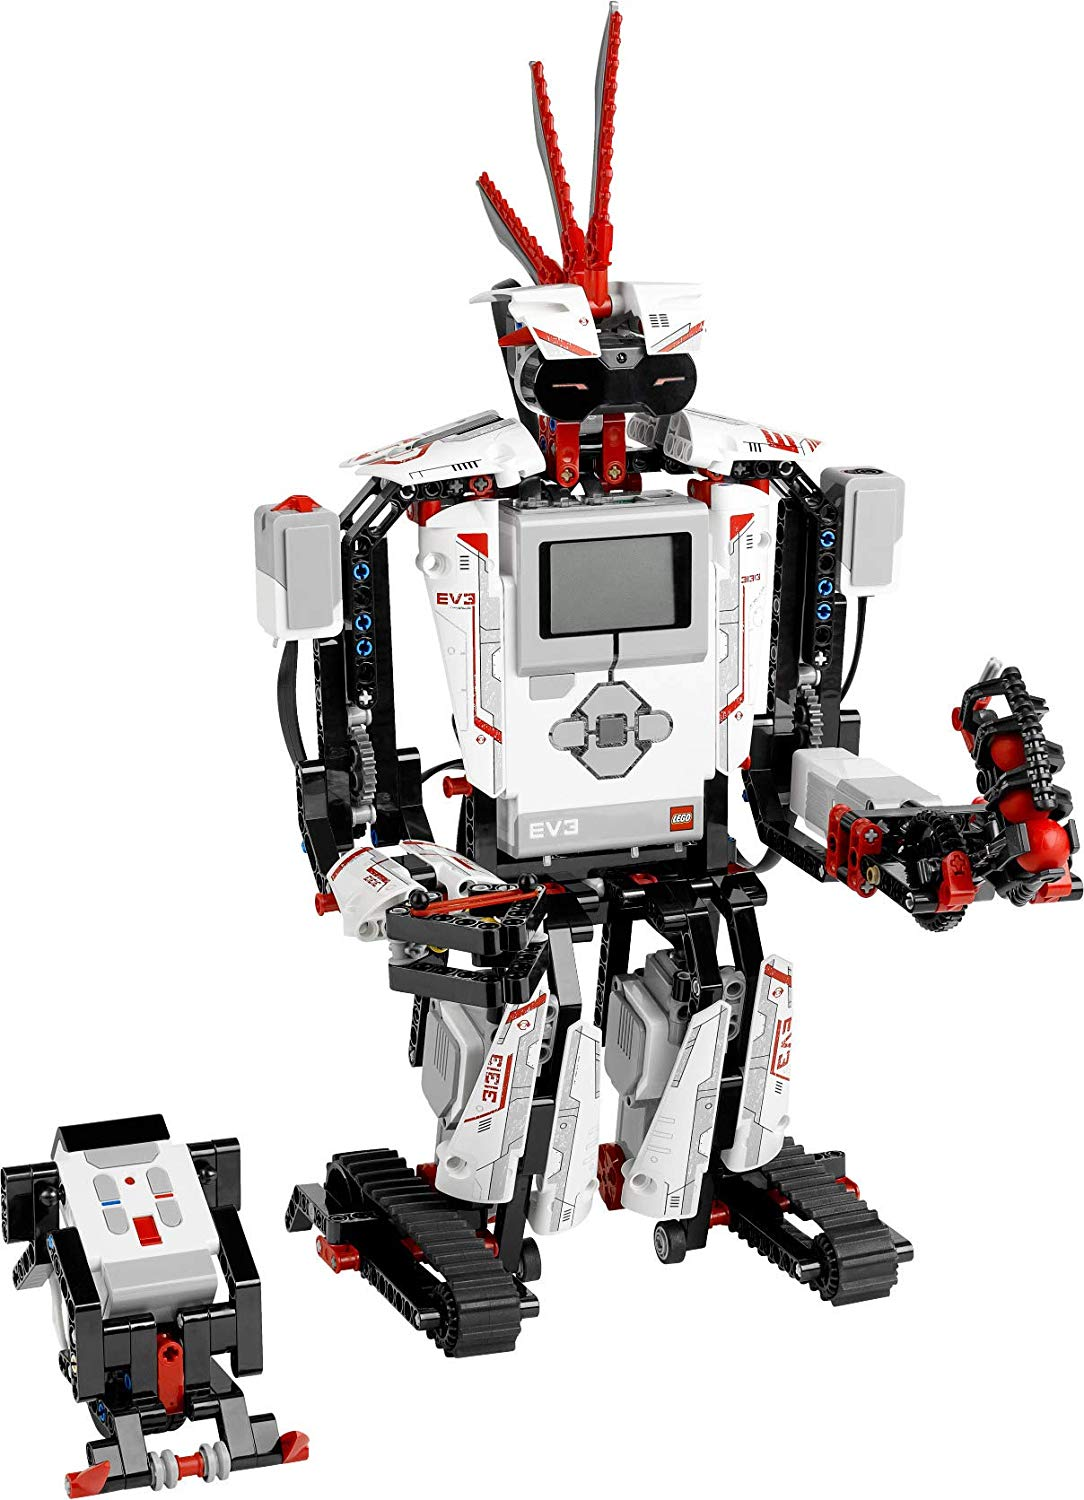 Lego Mindstorms Product